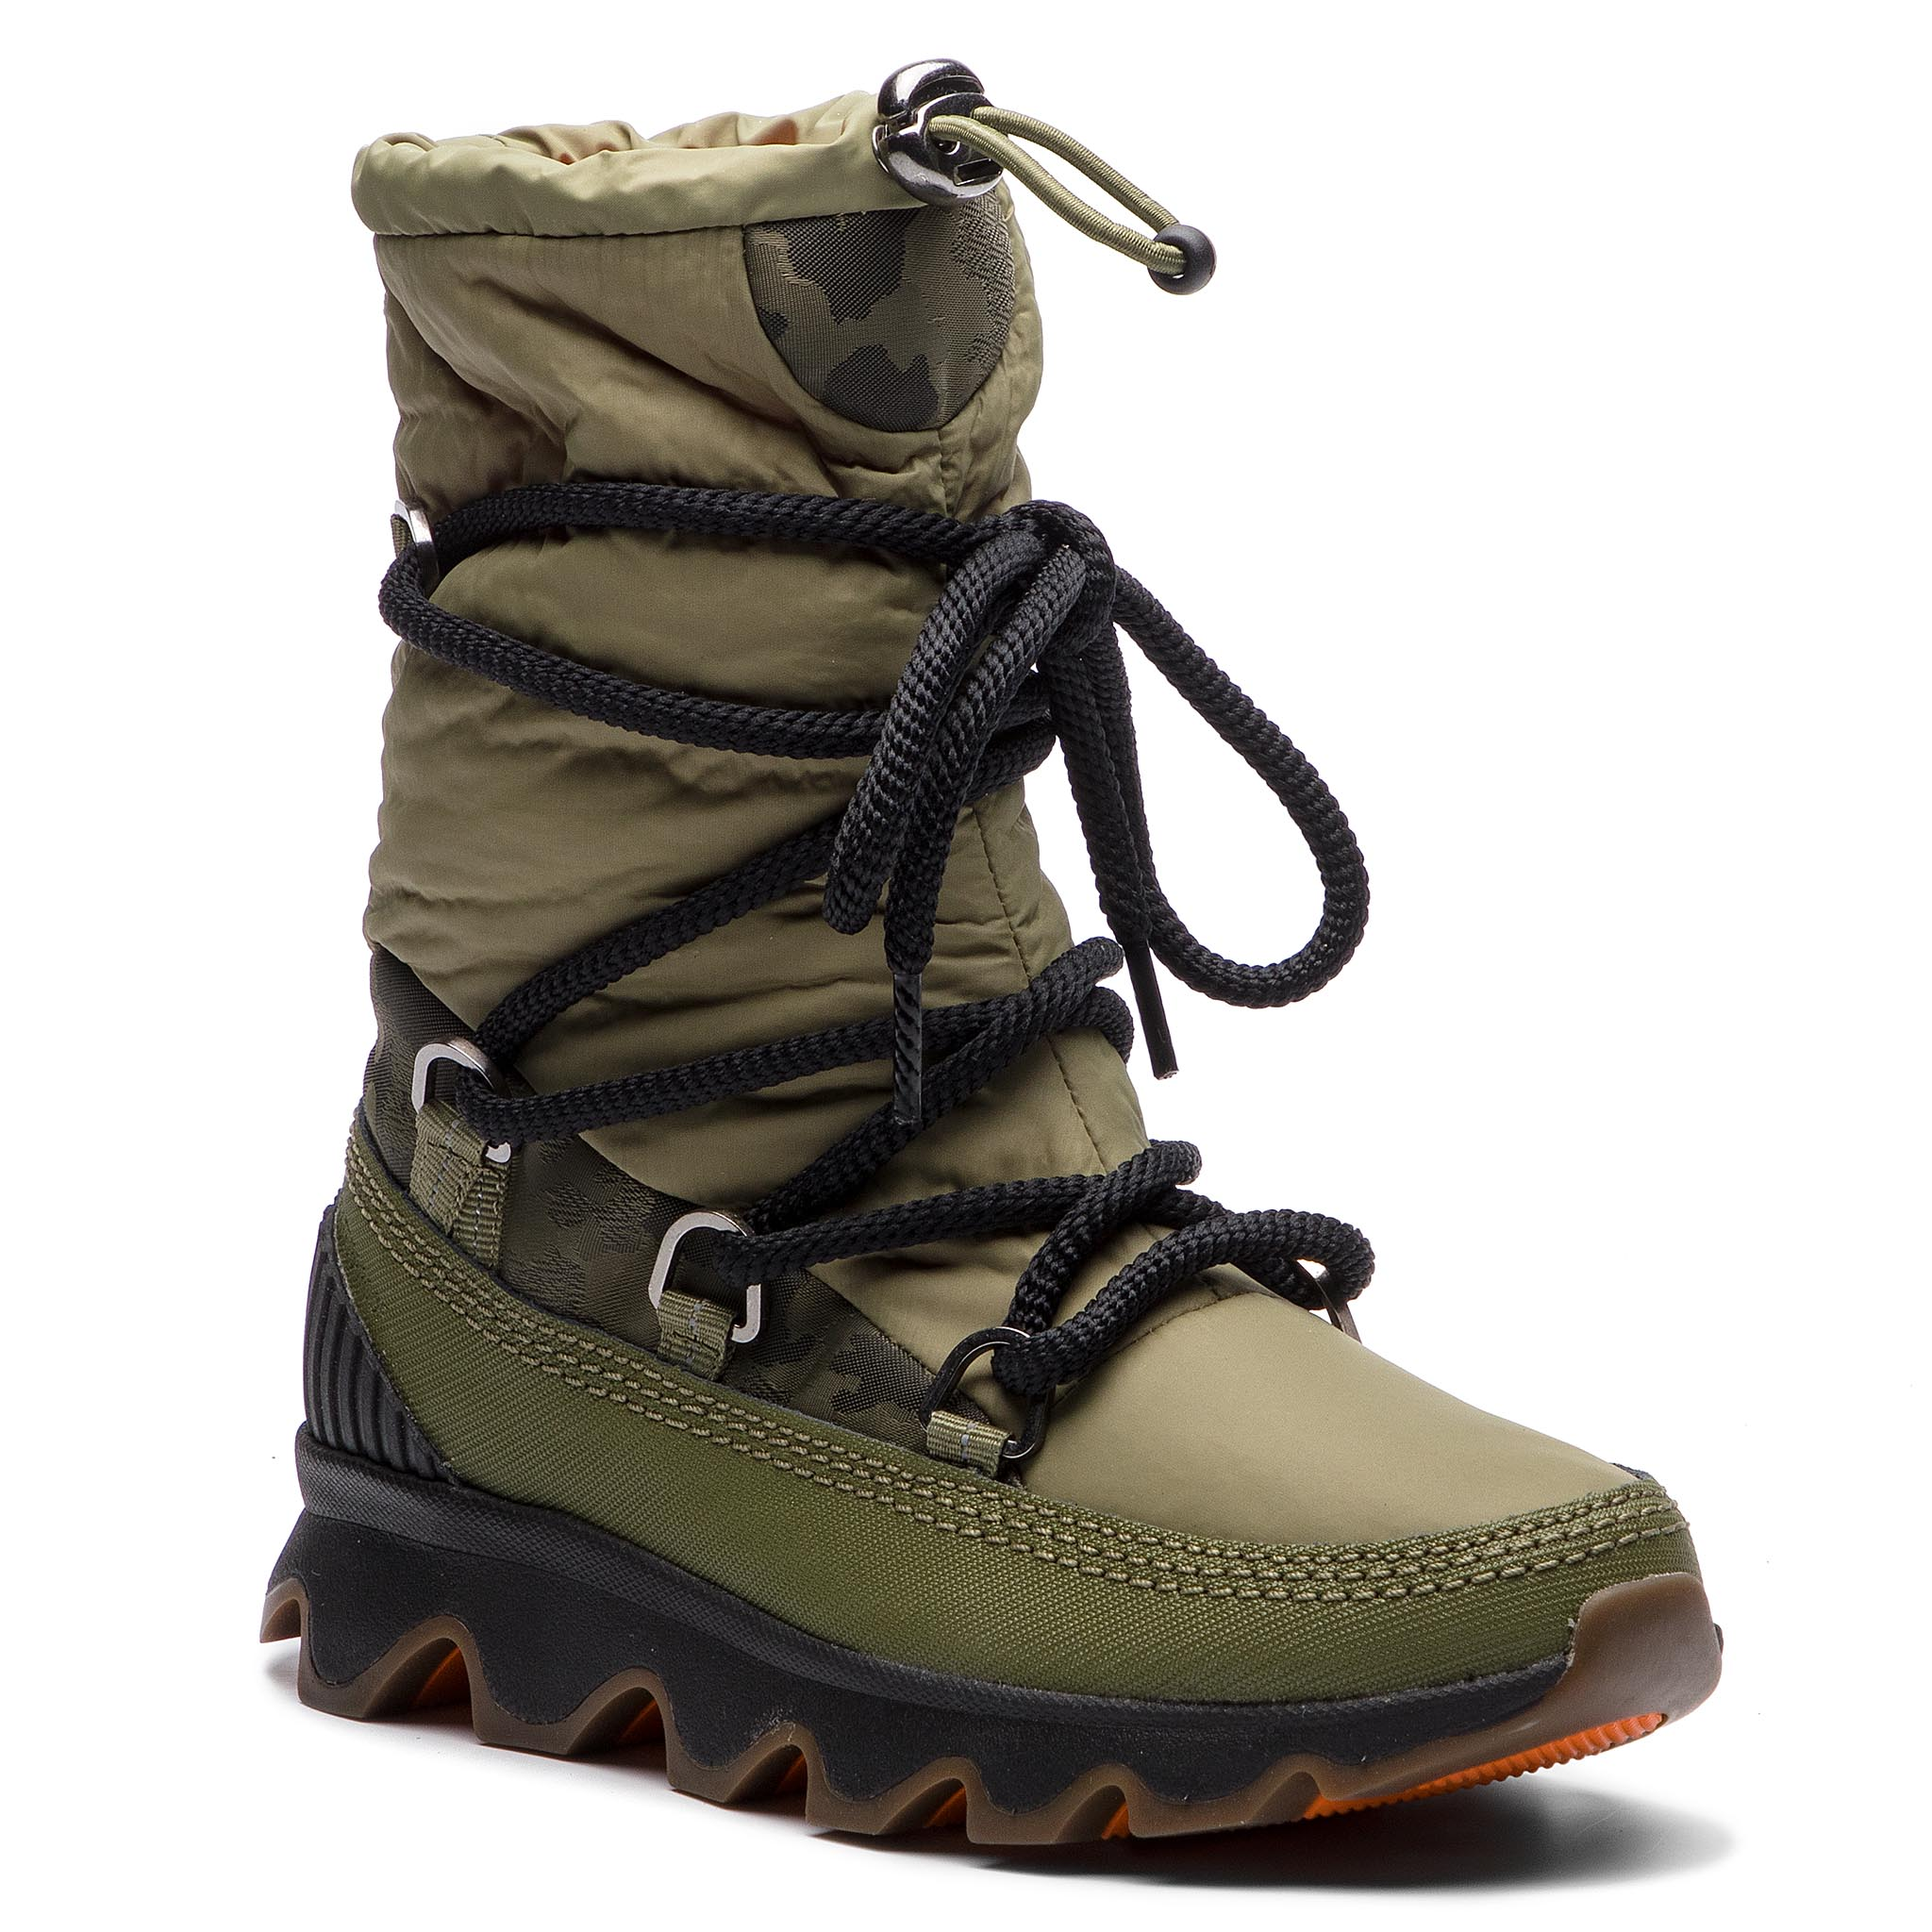 3eeac6b4d406 Shoes SOREL - Youth Rylee Camo NY1900 Black Light Bisque 010 - Boots ...